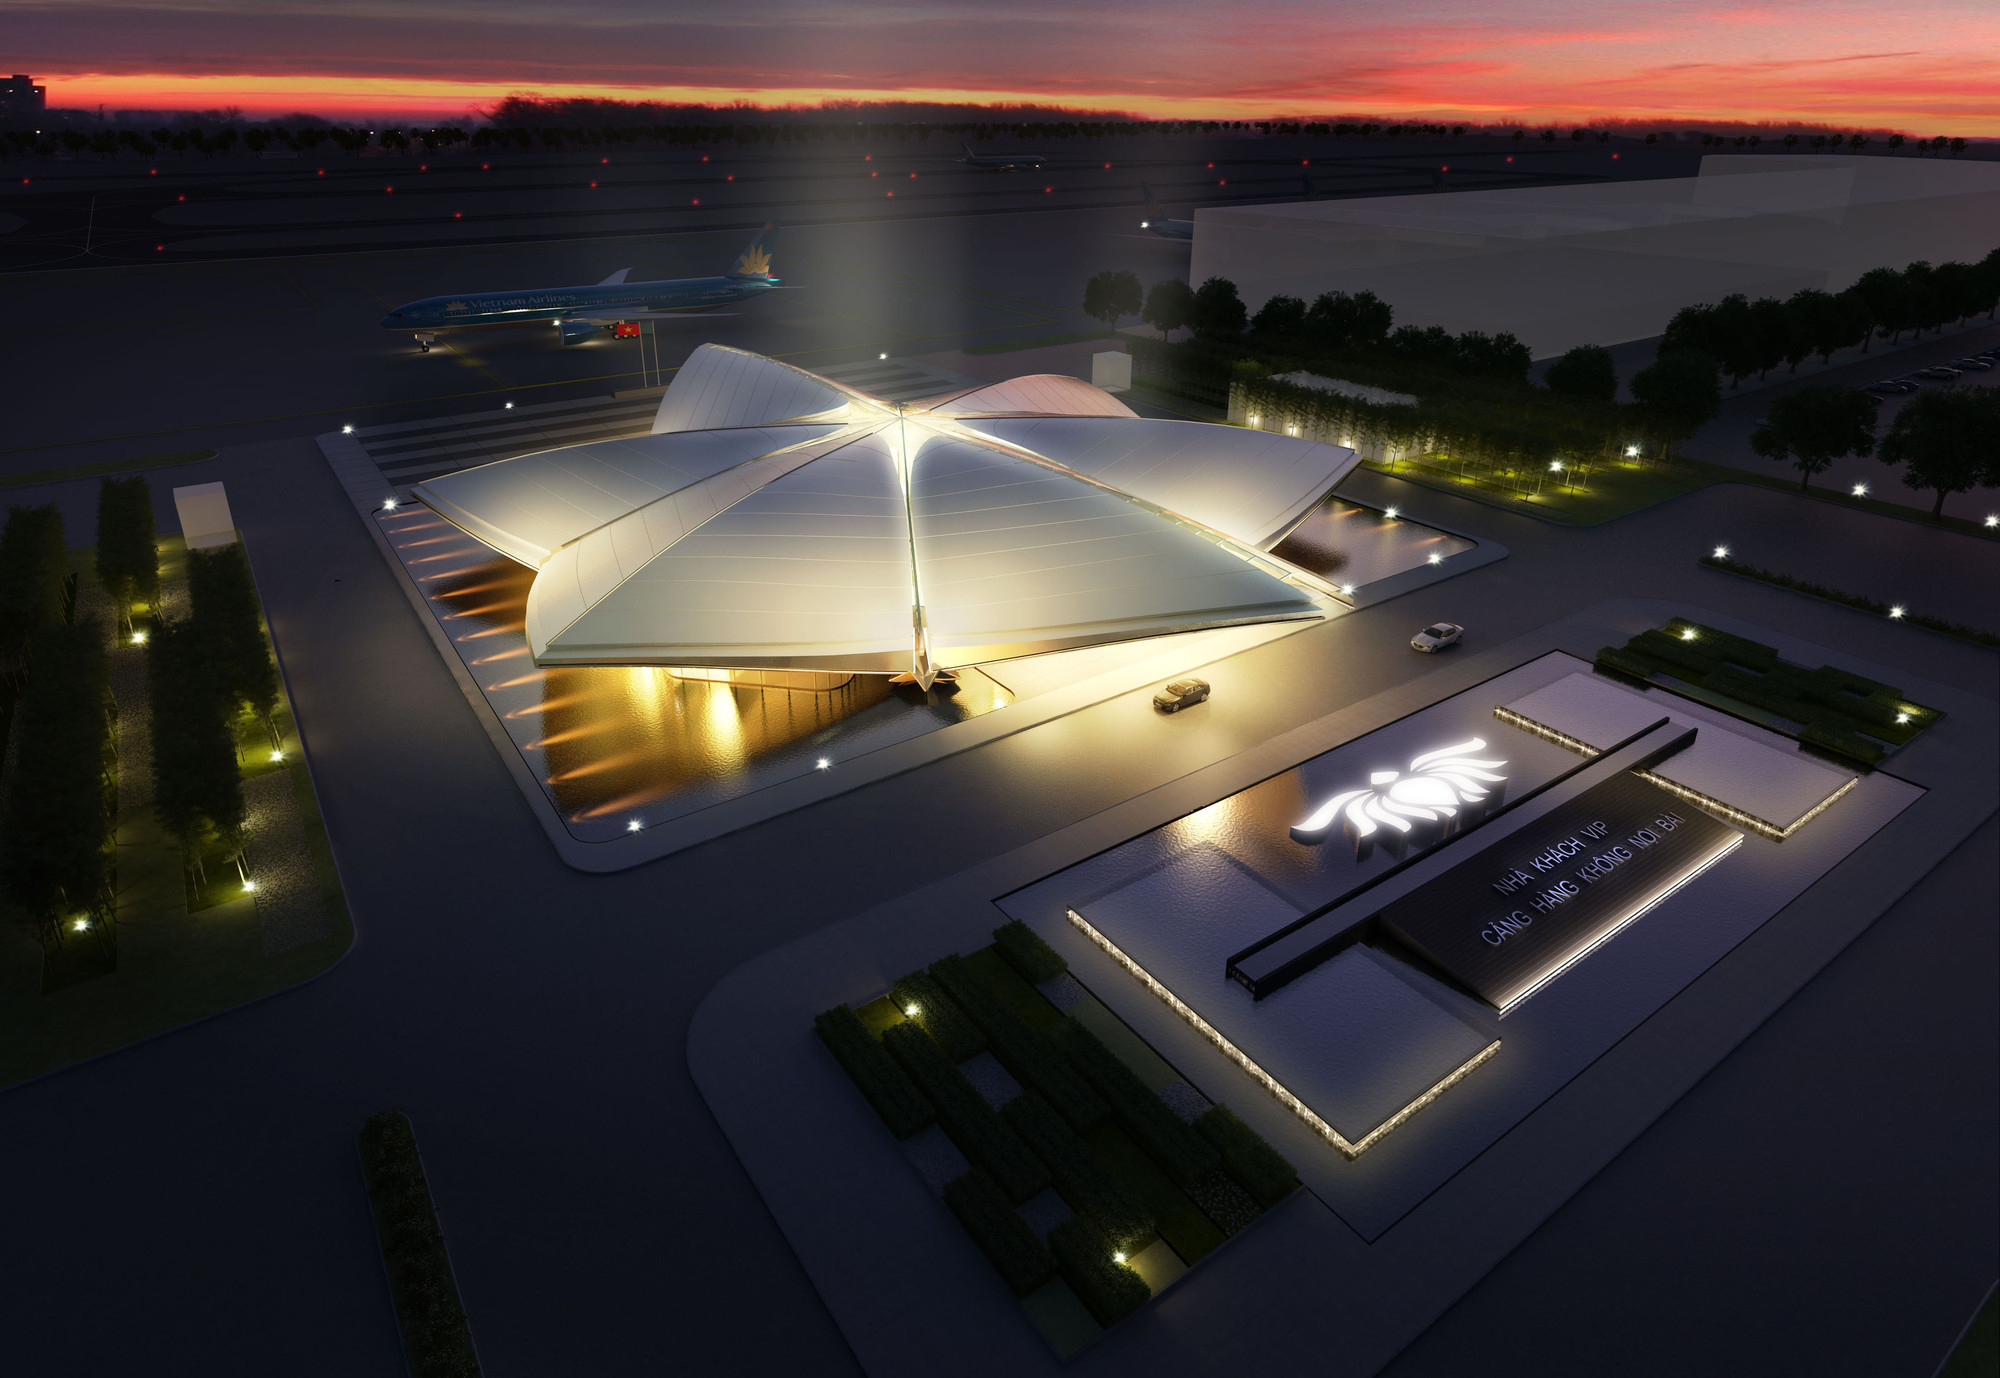 Hanoi's Noi Bai International Airport VIP Terminal Winning Proposal / CPG Consultants, Courtesy of CPG Consultants